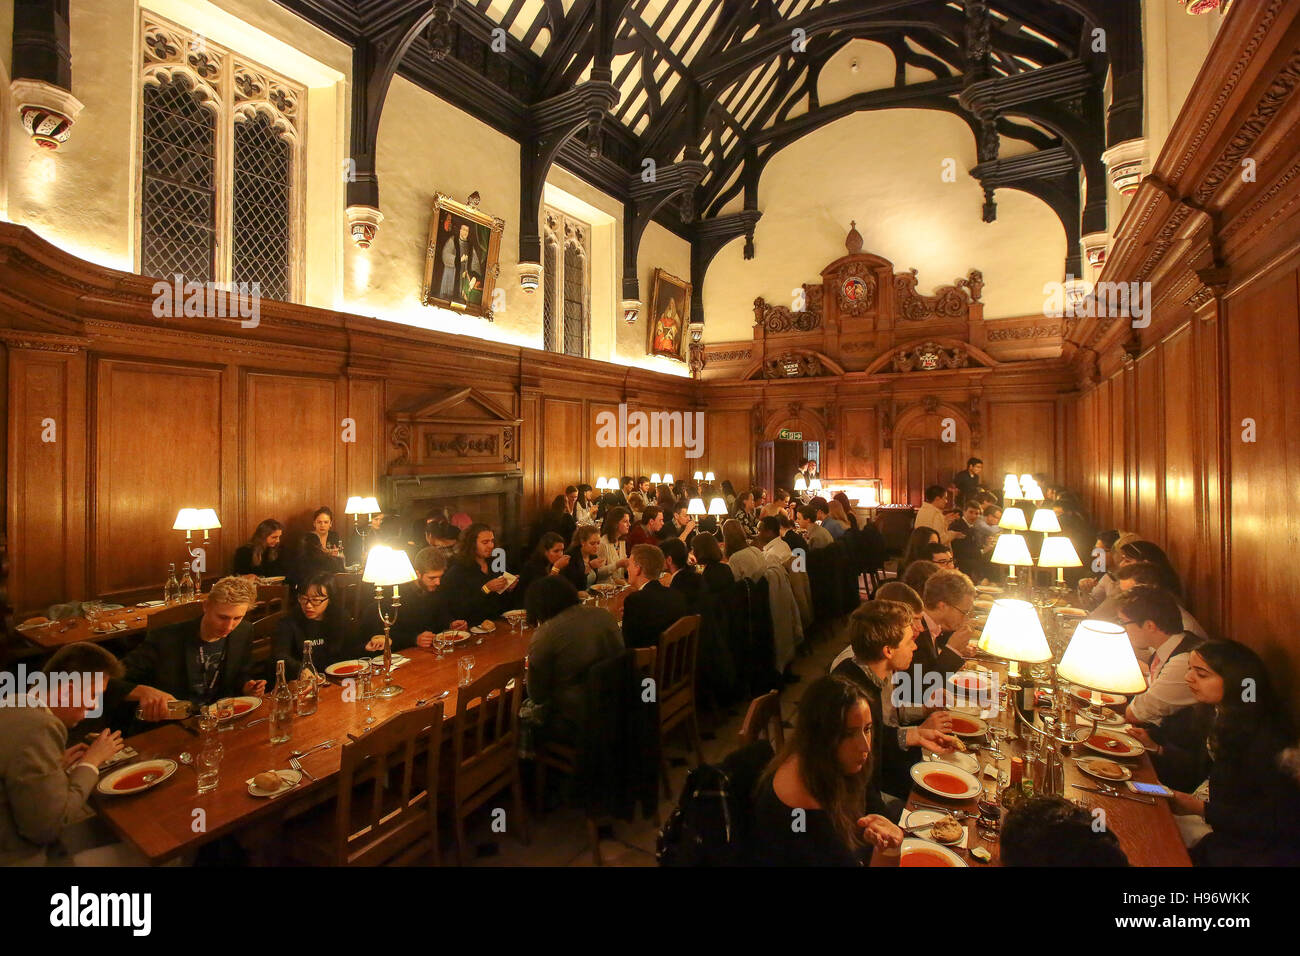 Students attending OxIMUN having dinner in the Corpus Christi College dining hall. From a series of photos taken - Stock Image